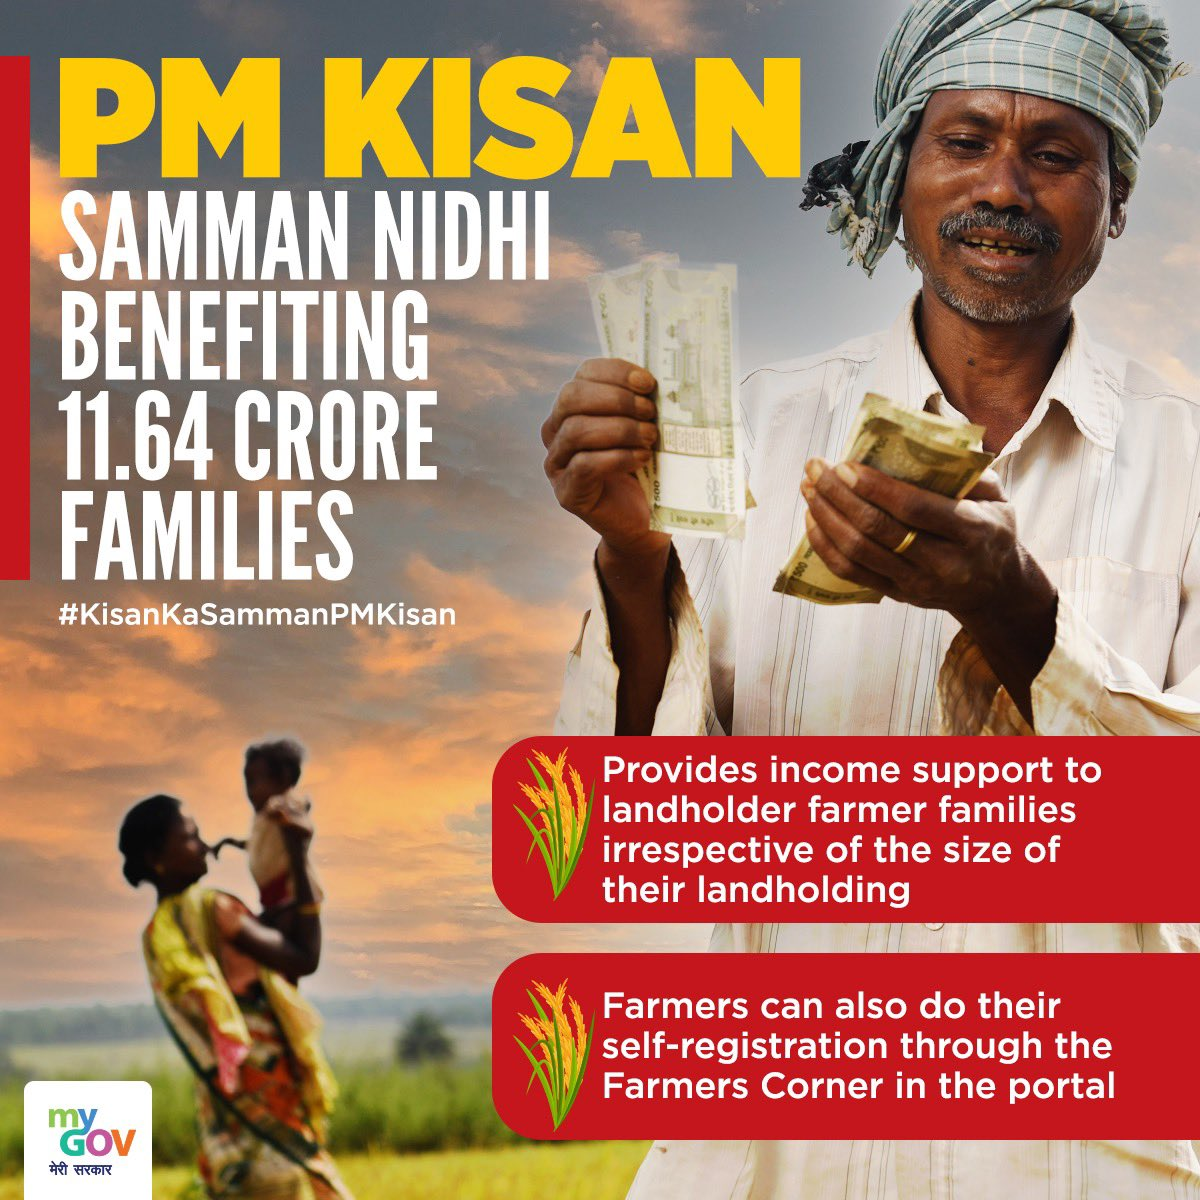 A massive step in farmers' welfare!   Through PM-KISAN Samman Nidhi, crores of farmers receive ₹6,000 every year directly in their bank accounts in 3 instalments. This cash-in-hand significantly benefits our farmers! #KisanKaSammanPMKisan